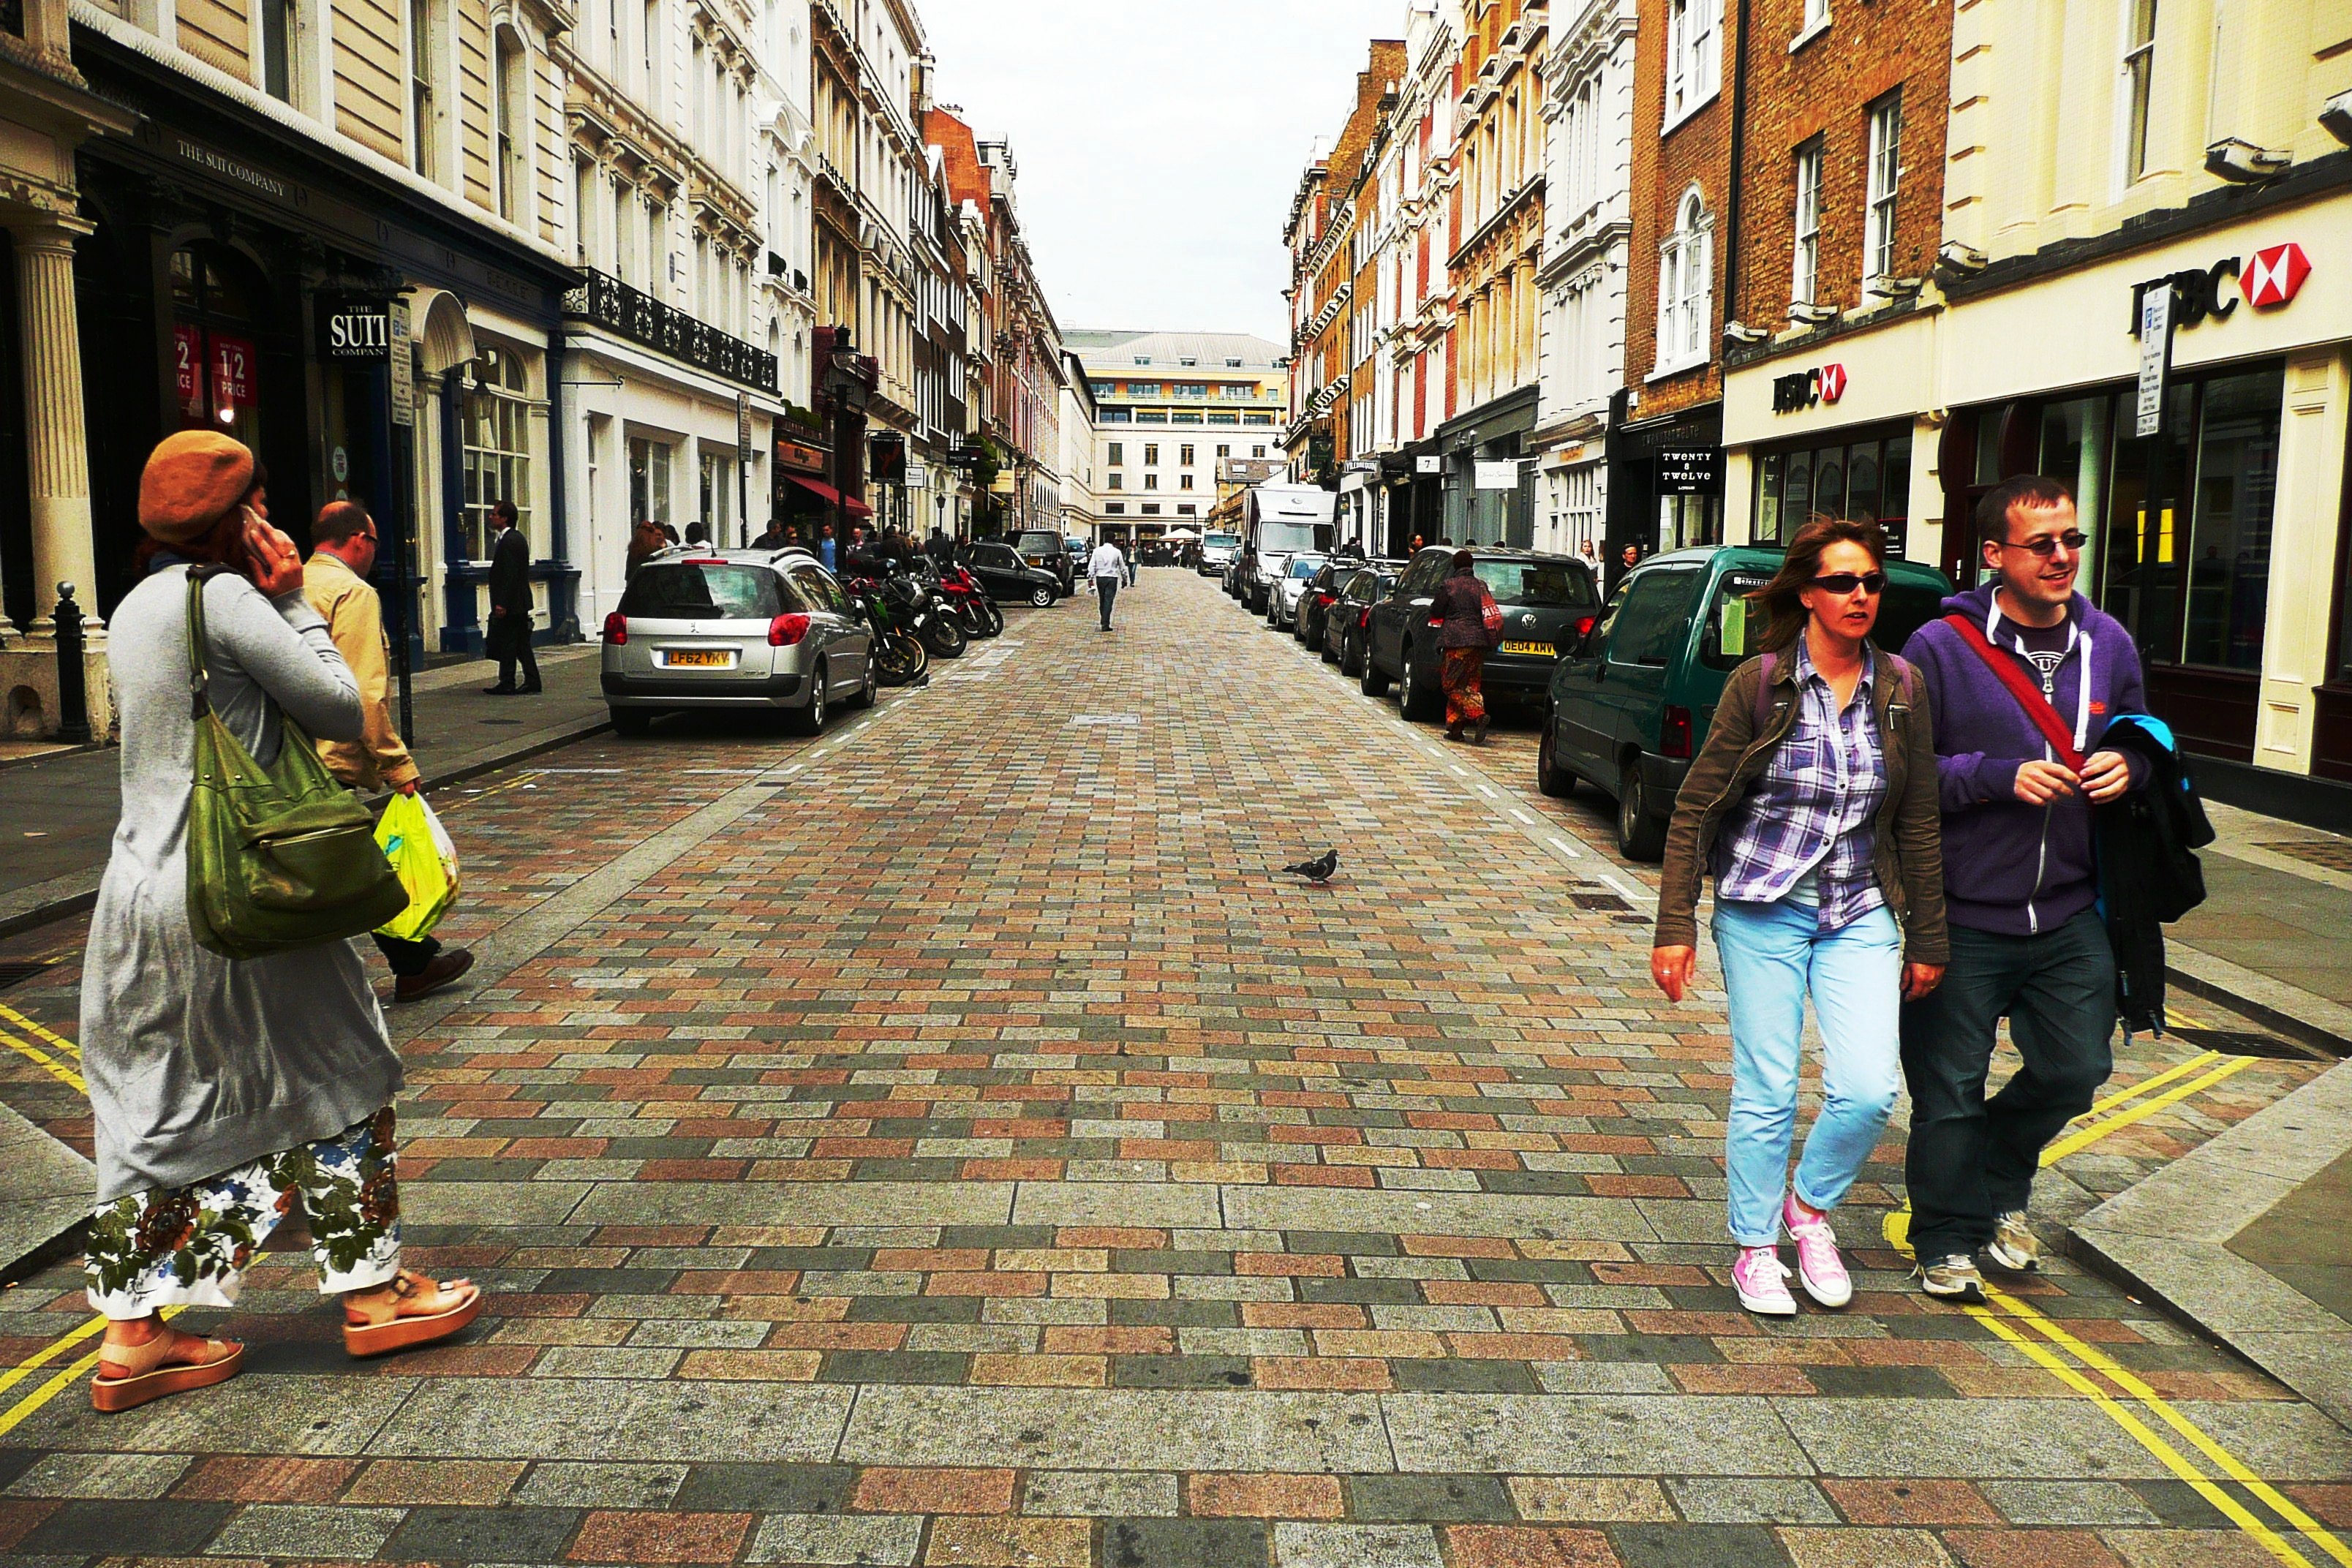 King Street, Covent Garden, with multi-coloured dressed setts in place.